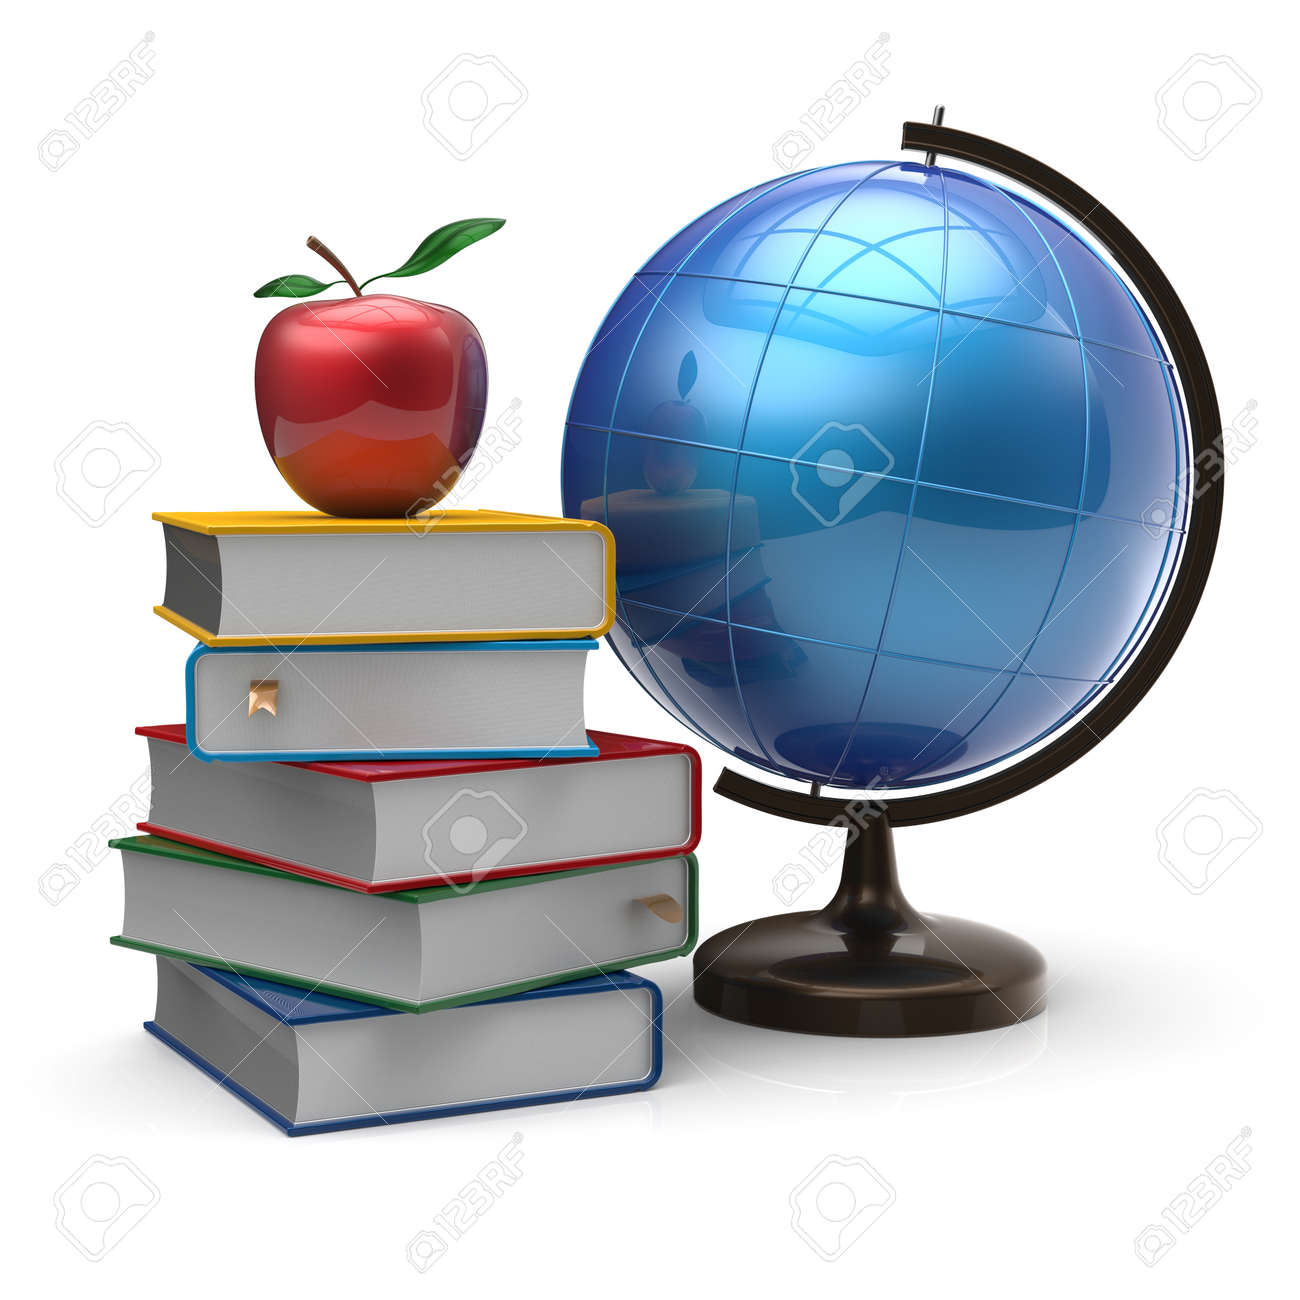 a symbol in literature globe books apple blank global geography  globe books apple blank global geography wisdom international globe books apple blank global geography wisdom international animal symbolism in literature